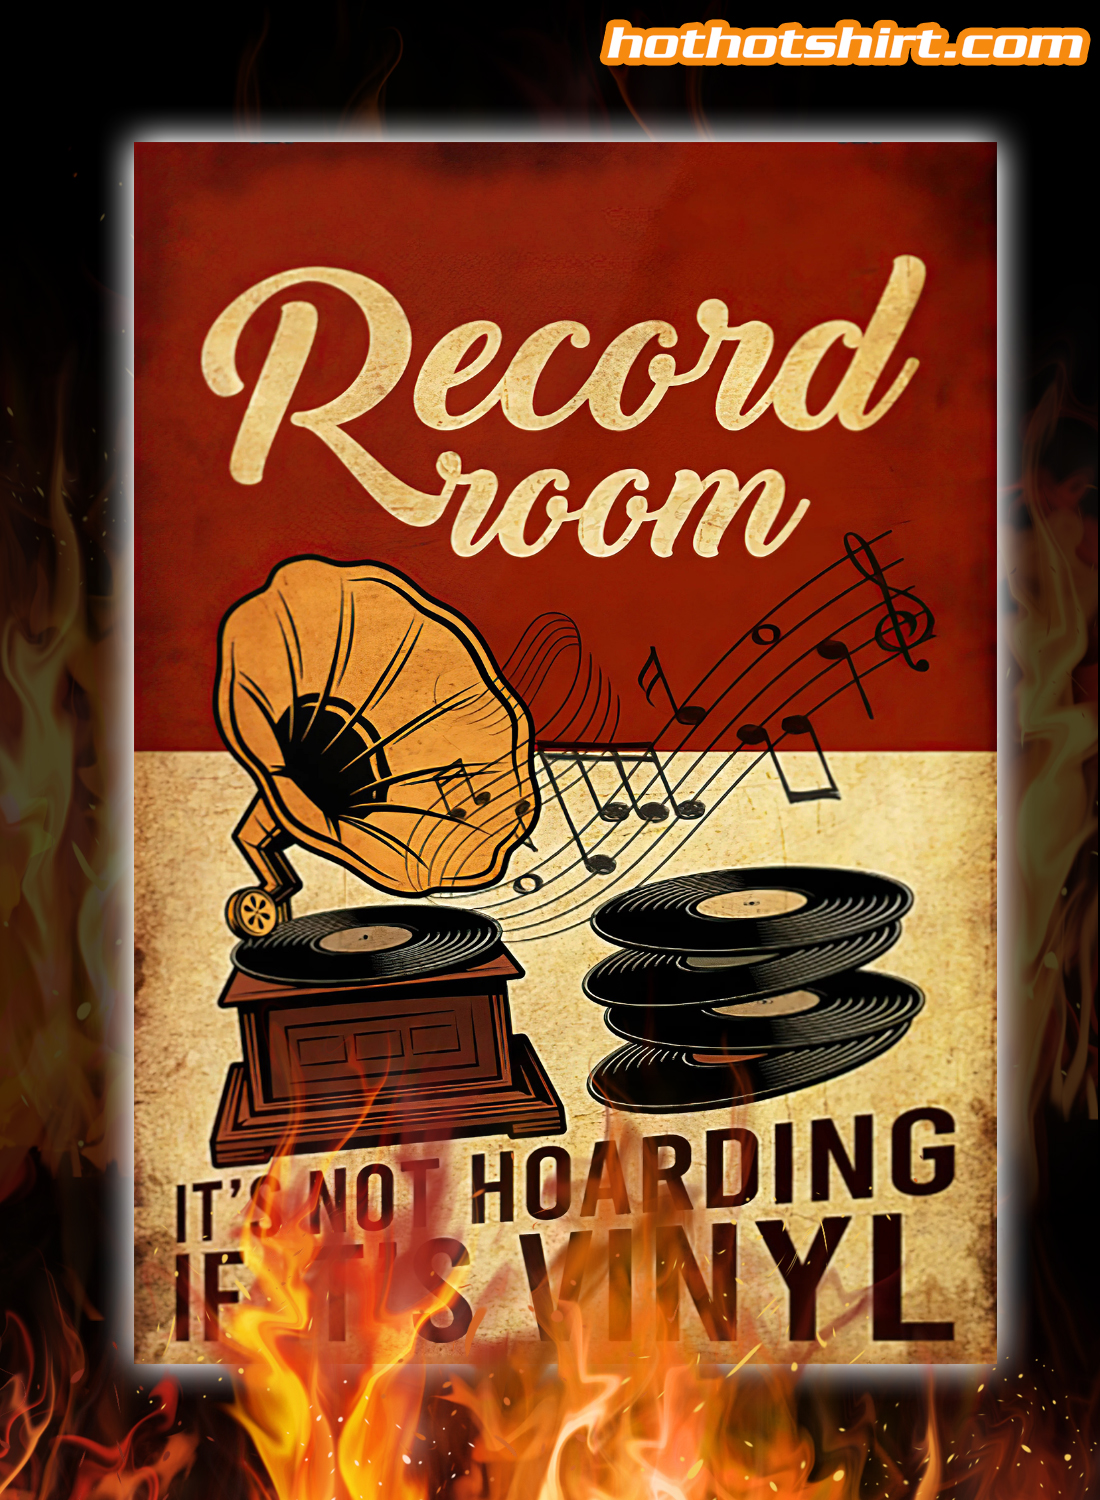 Pesonalized Record Room It's Not Hoarding If It's Vinyl poster